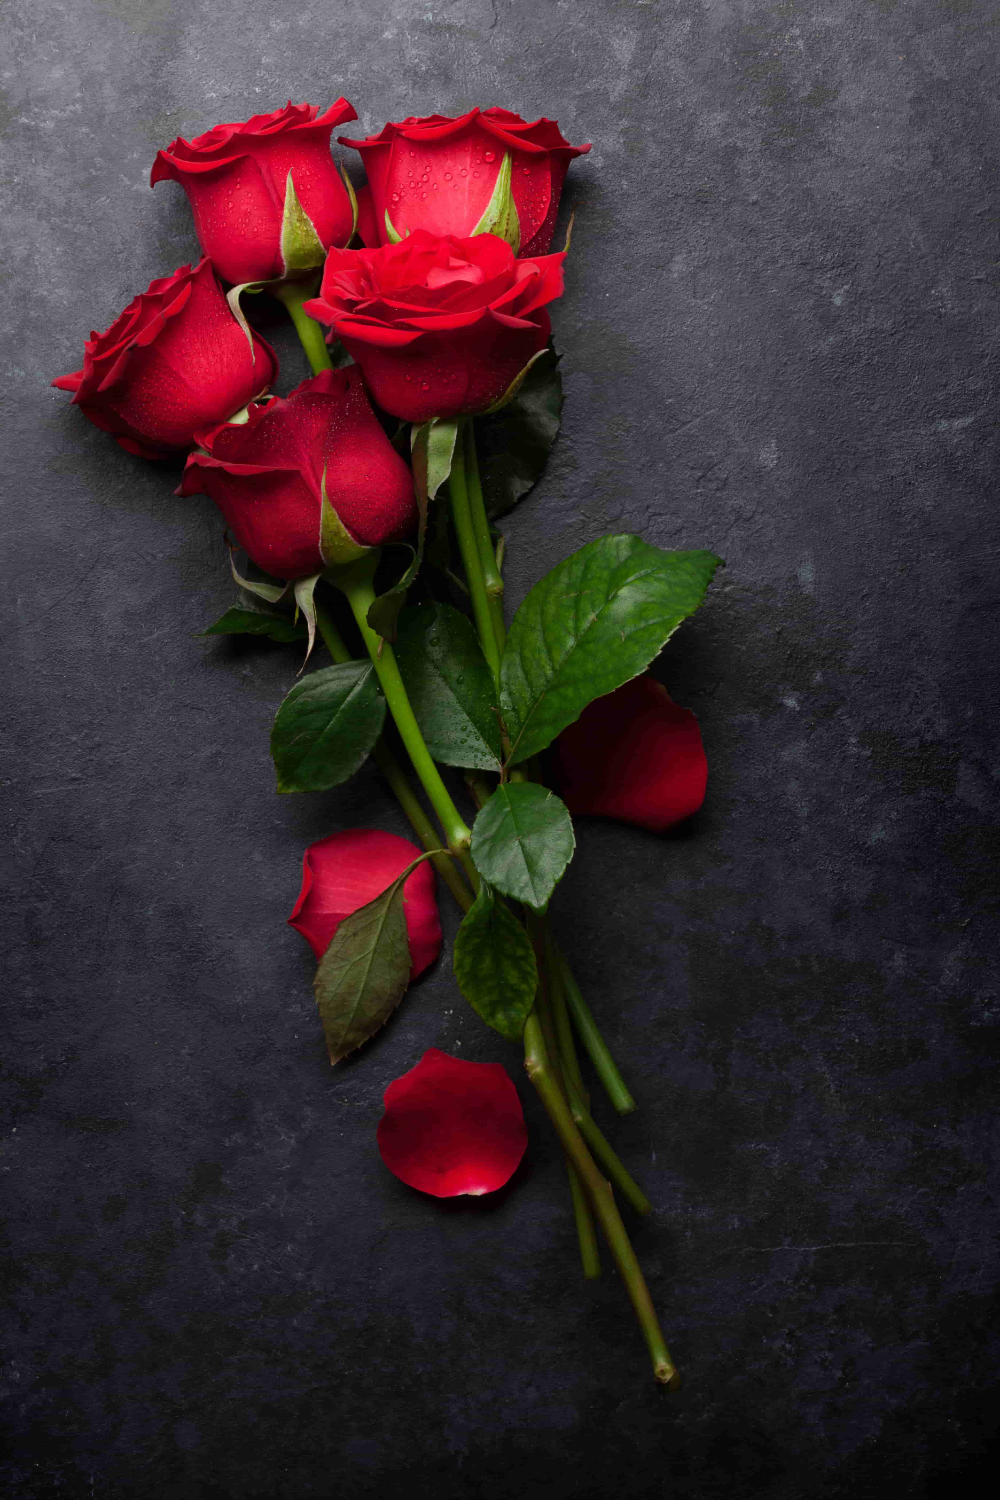 100 Rose Images Rose Flower Wallpaper Beautiful Flowers Wallpapers Flower Images